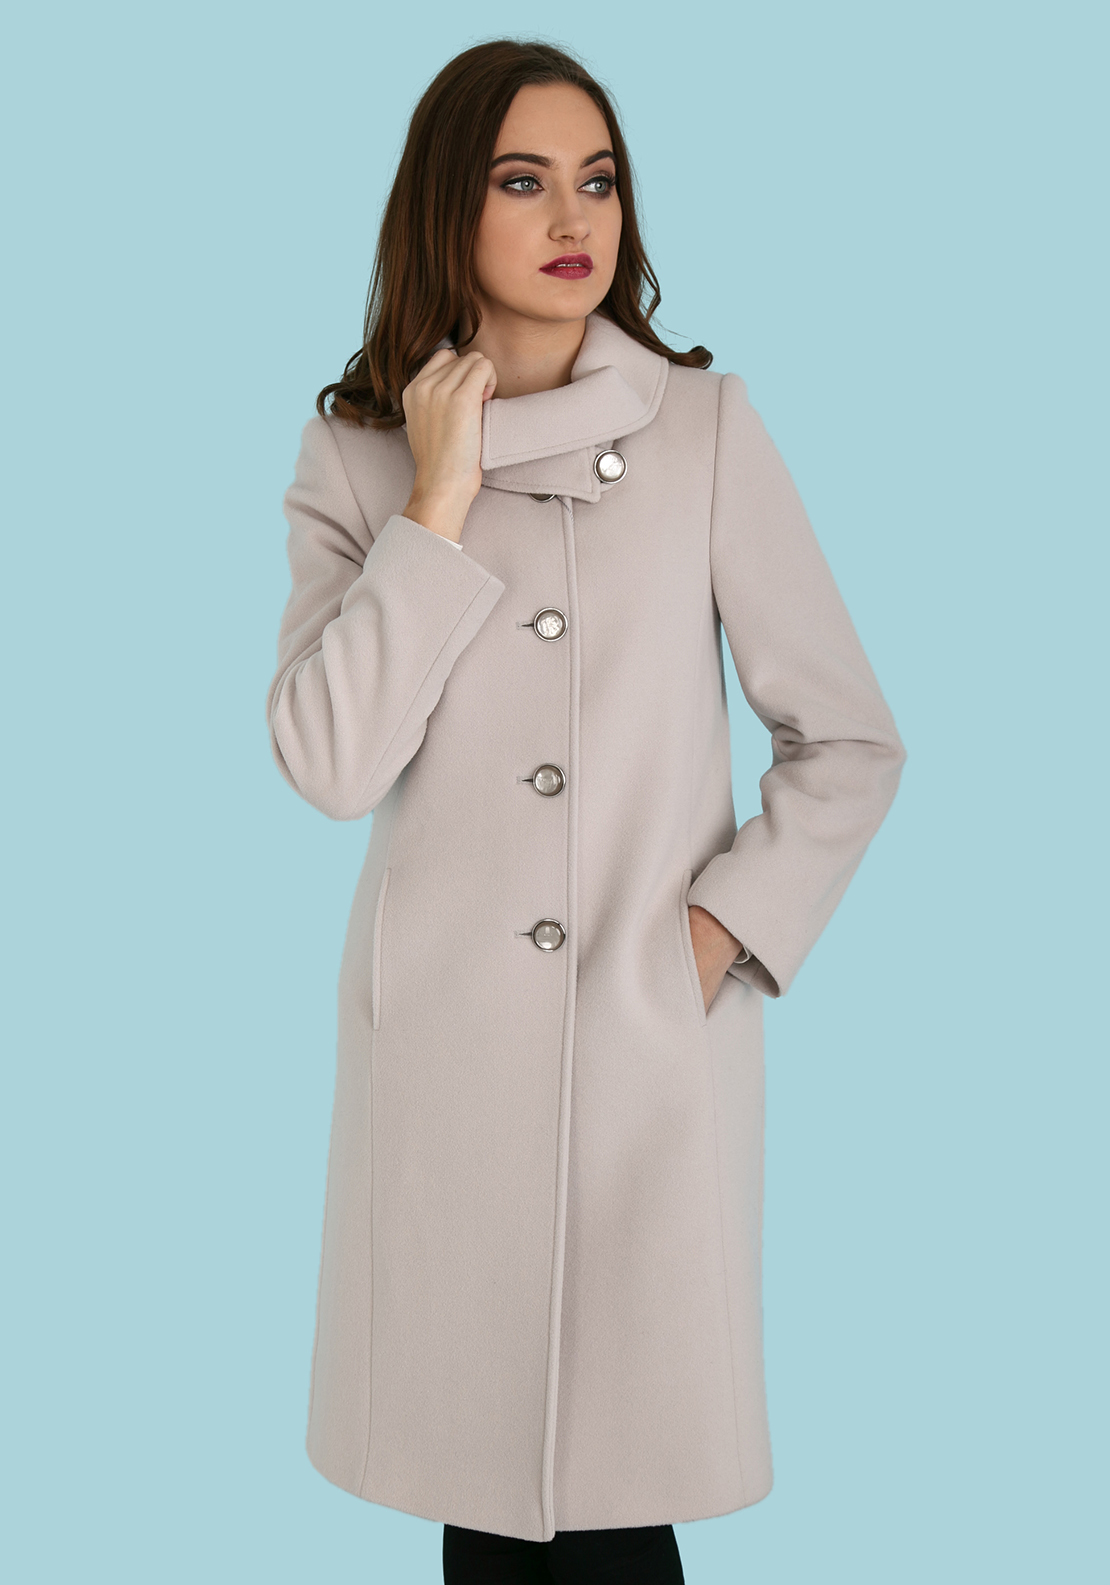 Christina Felix Shawl Collar Wool Coat, Beige